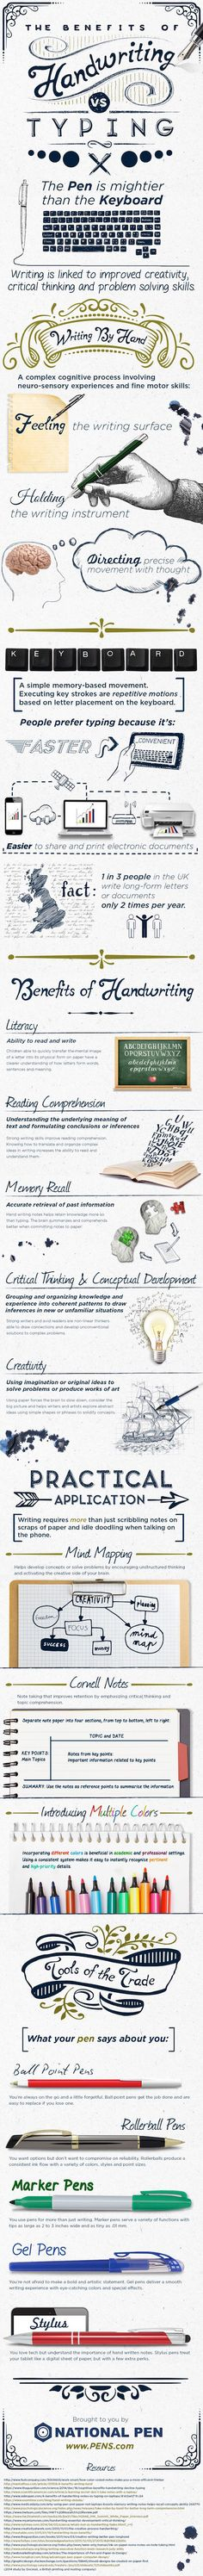 The Benefits of Handwriting Vs Typing: INFOGRAPHIC   AKA why I write notes by hand <3 - Kate Tilton